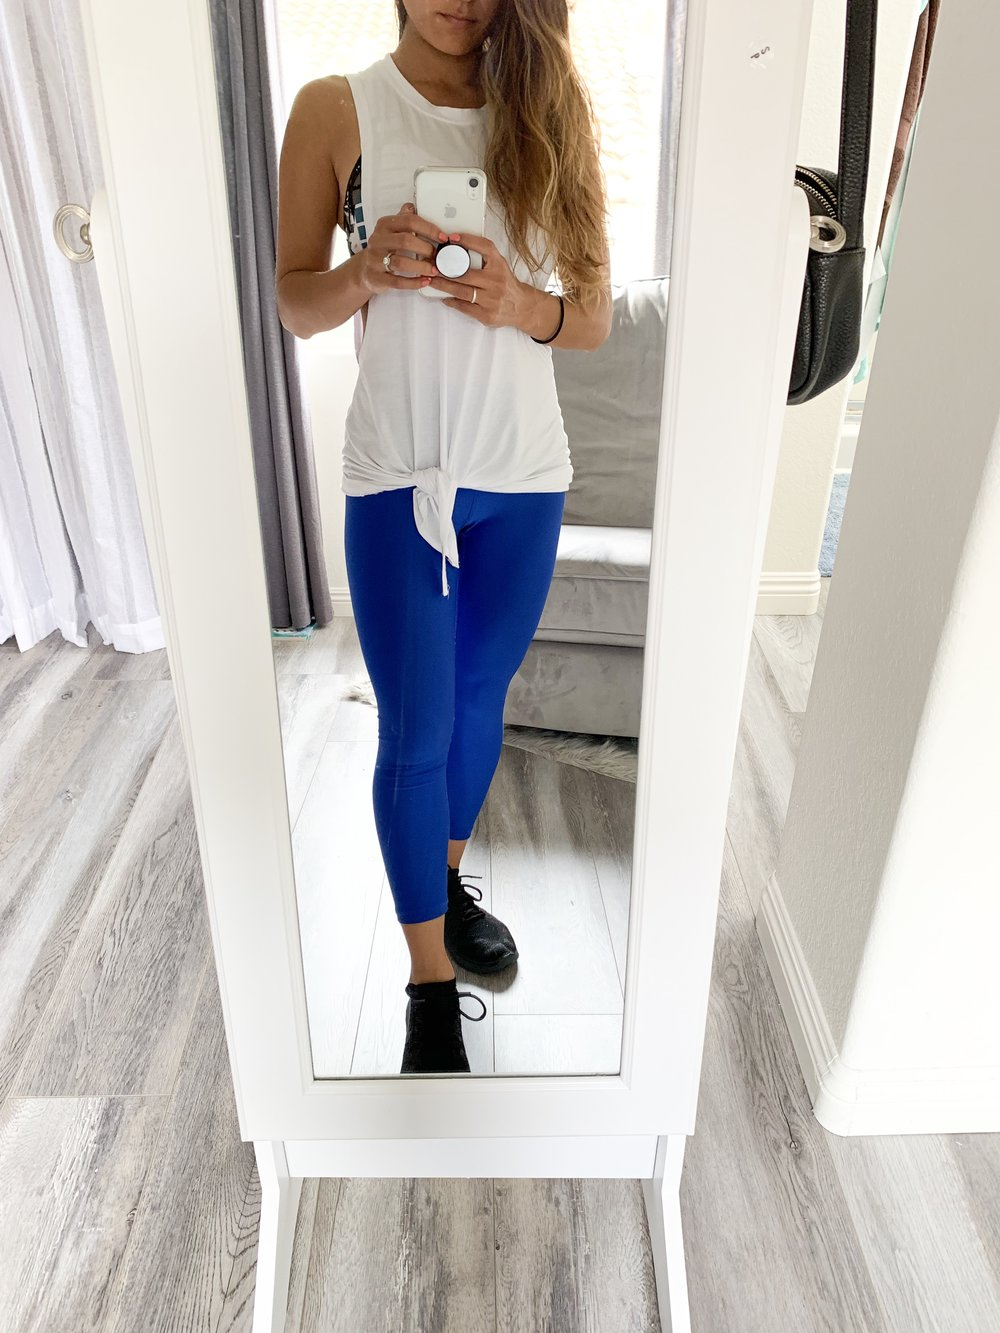 Amazon workout leggings - 42 colors to choose from!